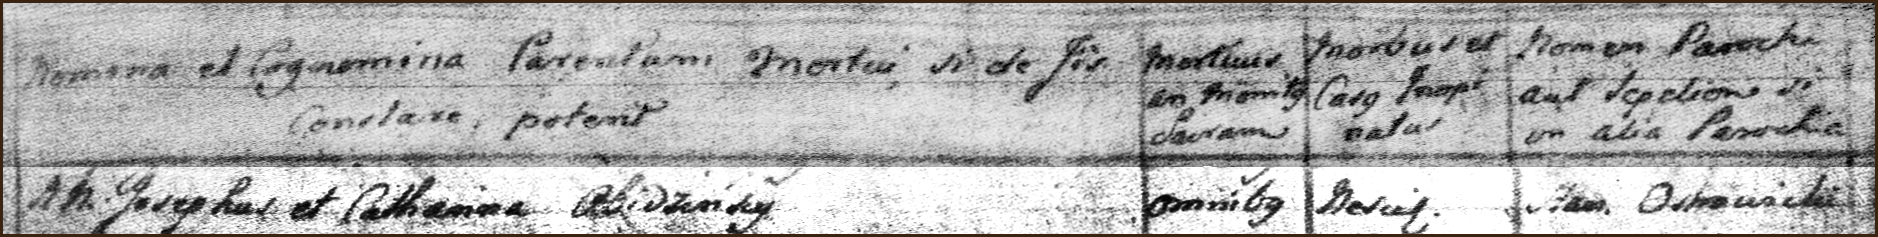 Right Side of the Death and Burial Record of Agnieszka Obidzinska - 1782